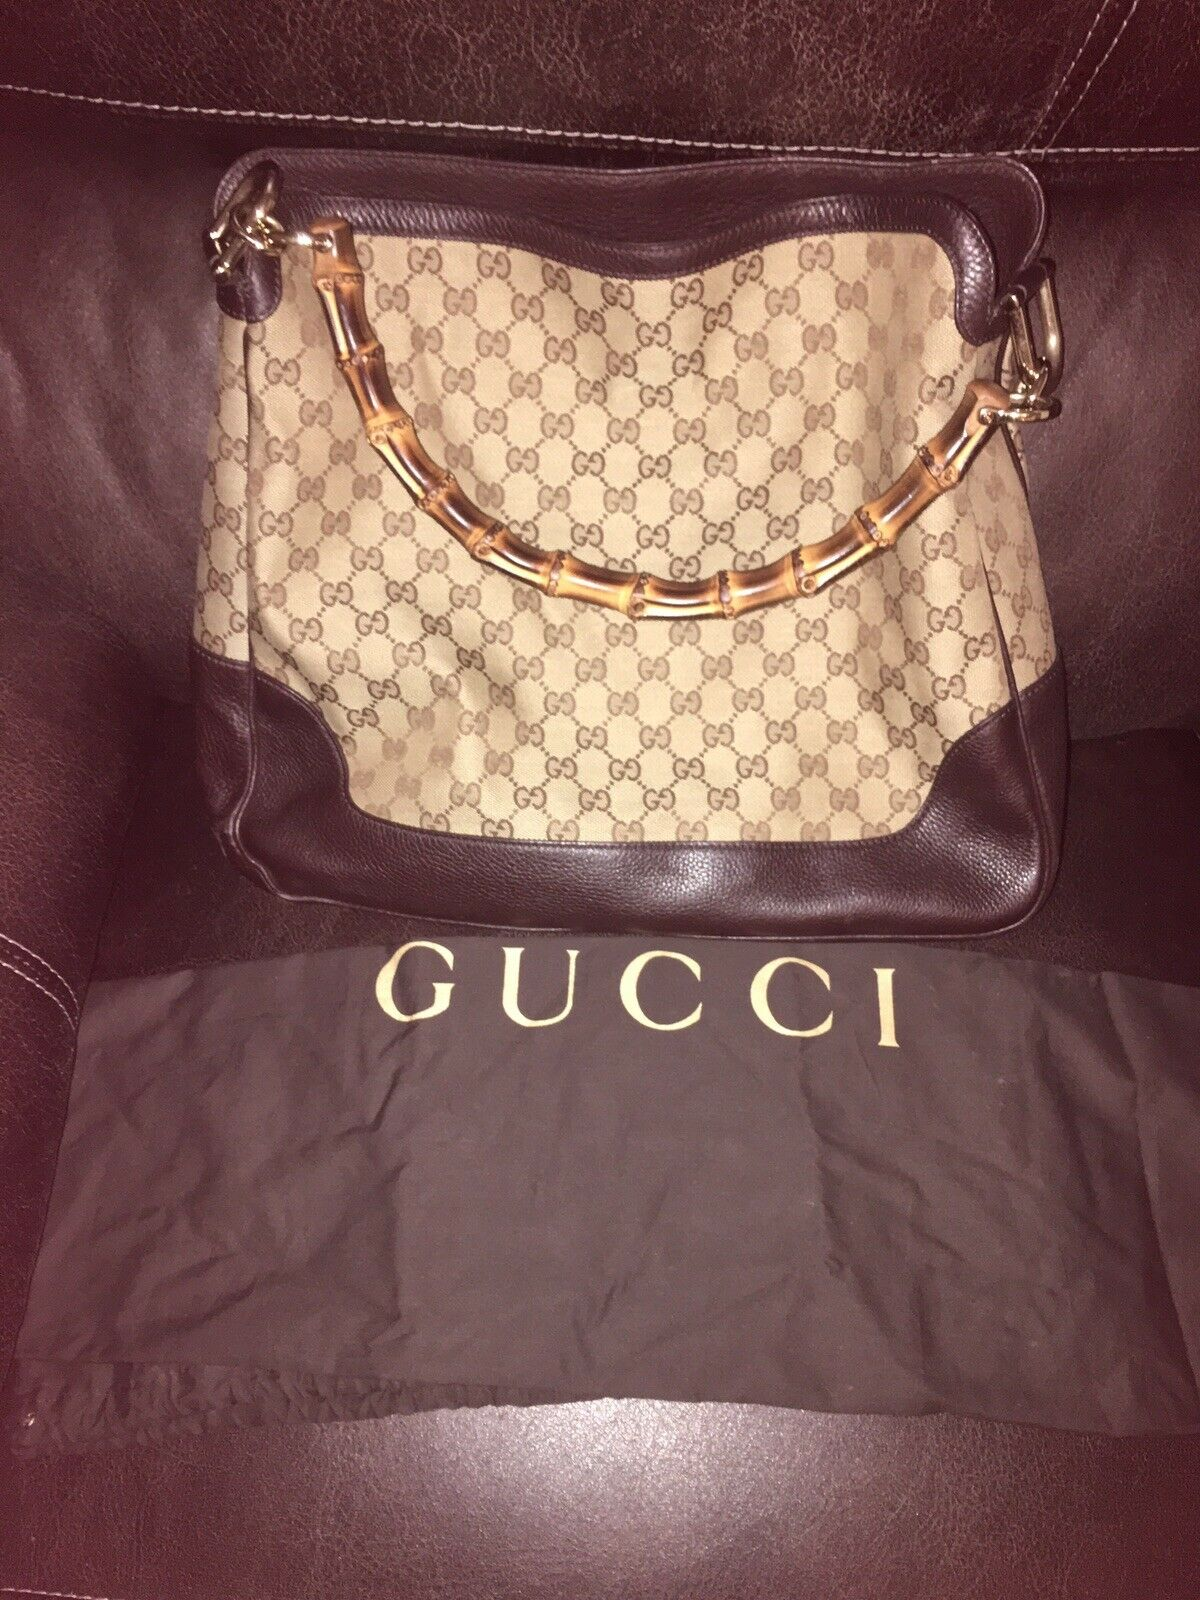 WOMENS GUCCI DIANA BAG/PURSE WITH BAMBOO HANDLE, … - image 2